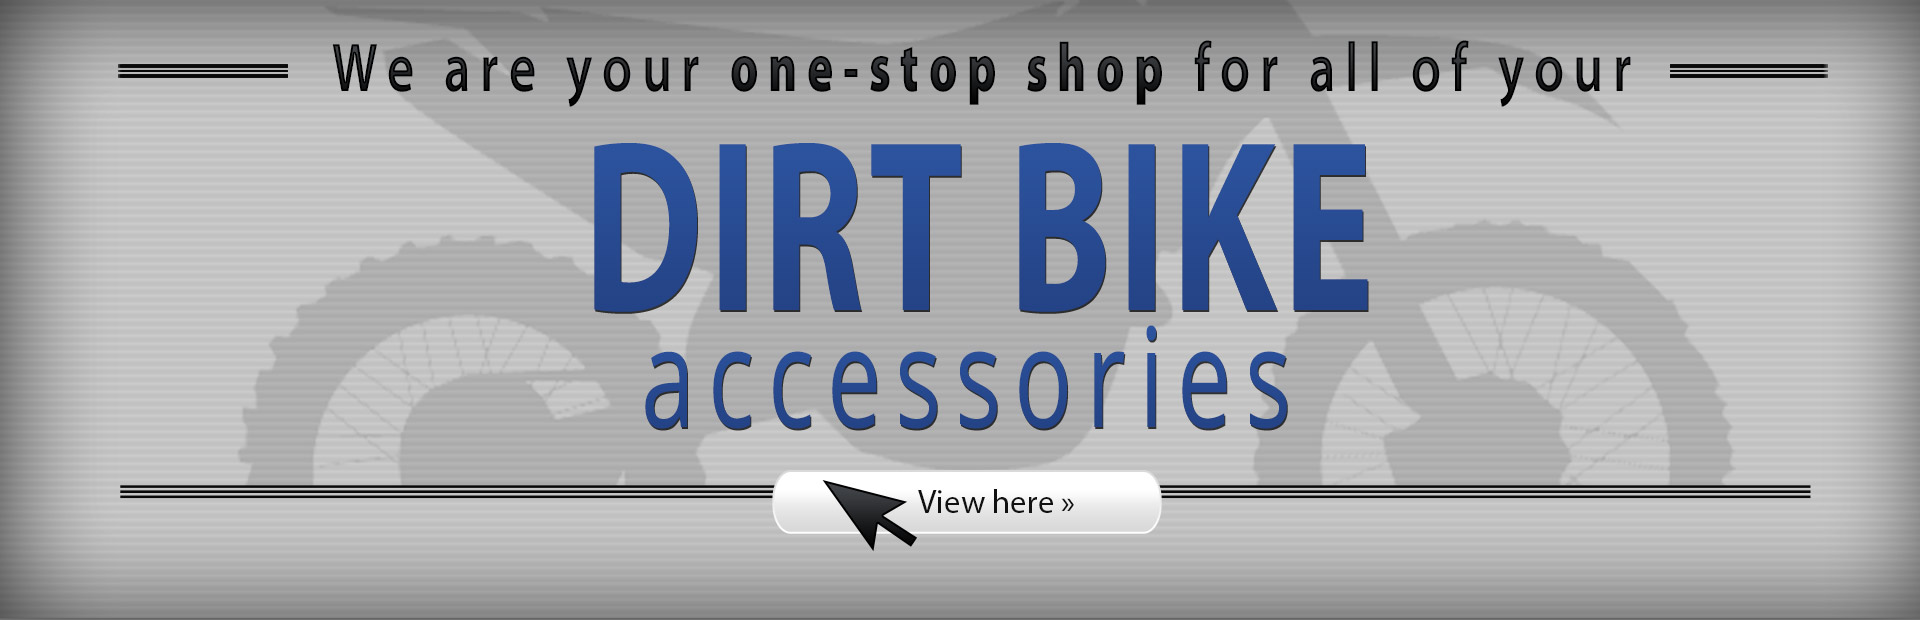 We are your one-stop shop for dirt bike accessories! Click here to shop.